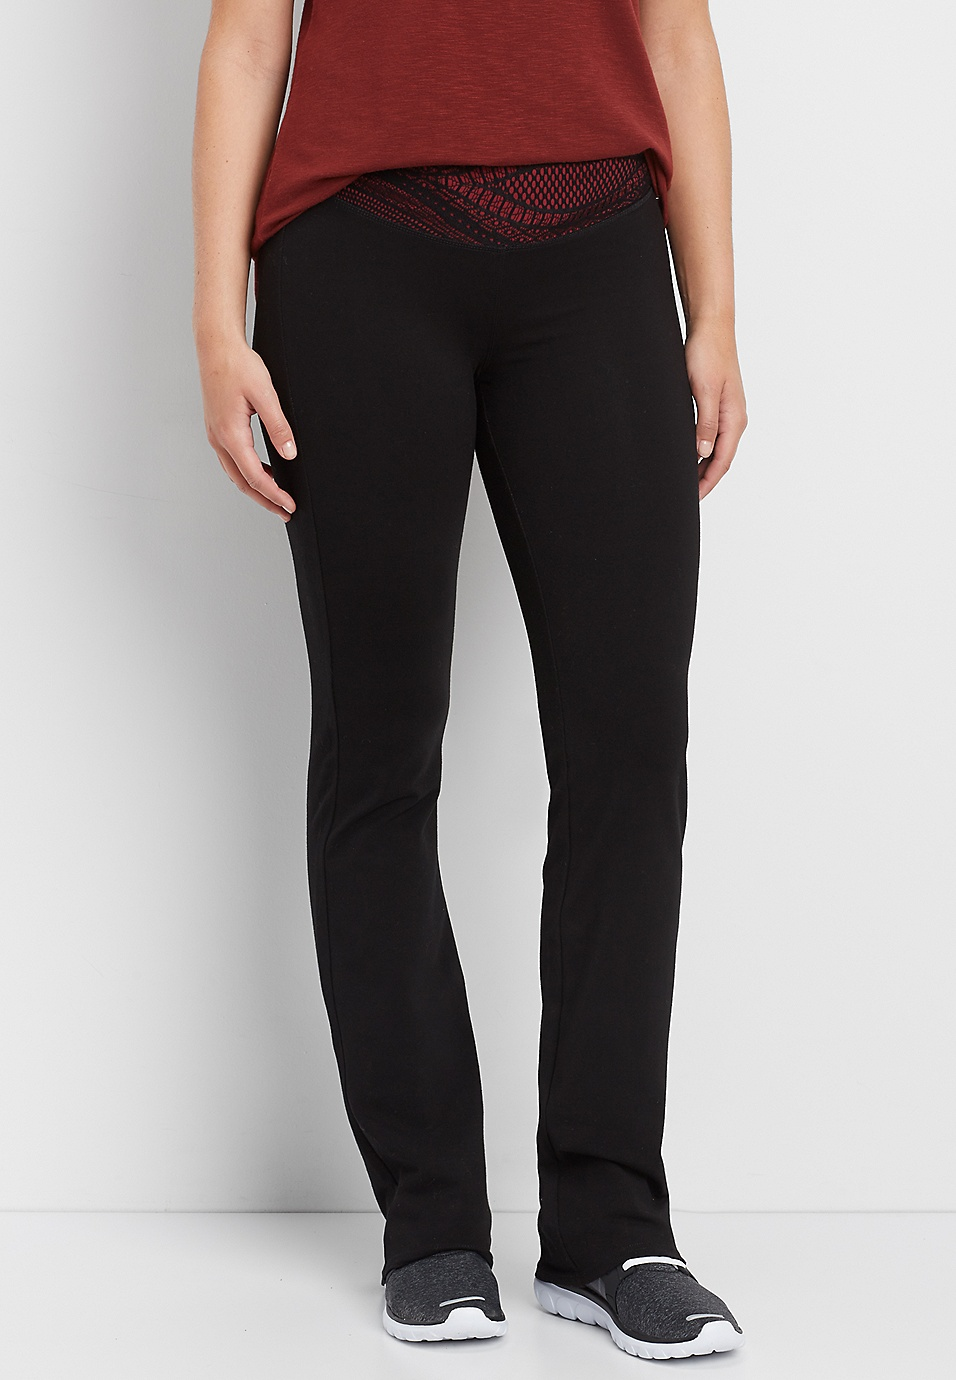 5a9b54f514 bootcut yoga pant with lace waistband | maurices